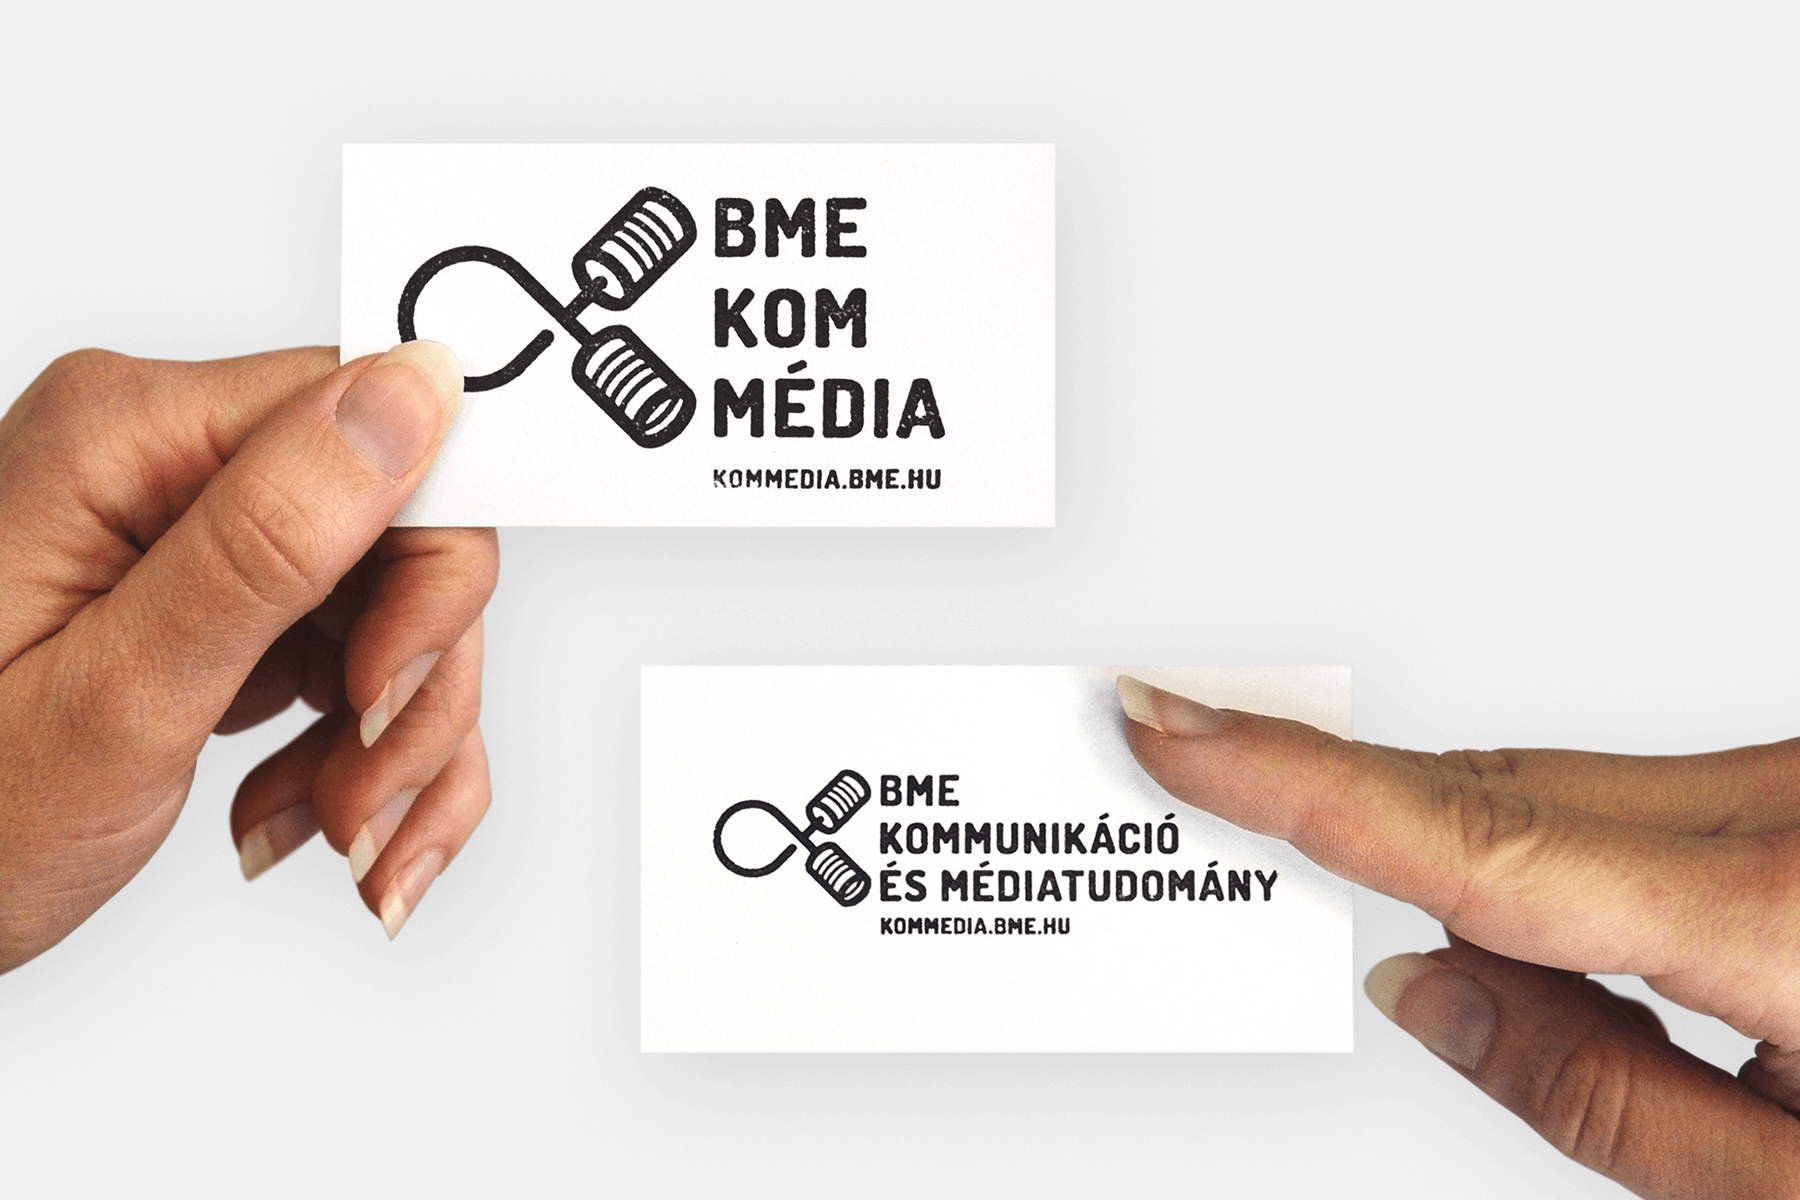 BME KomMedia business cards